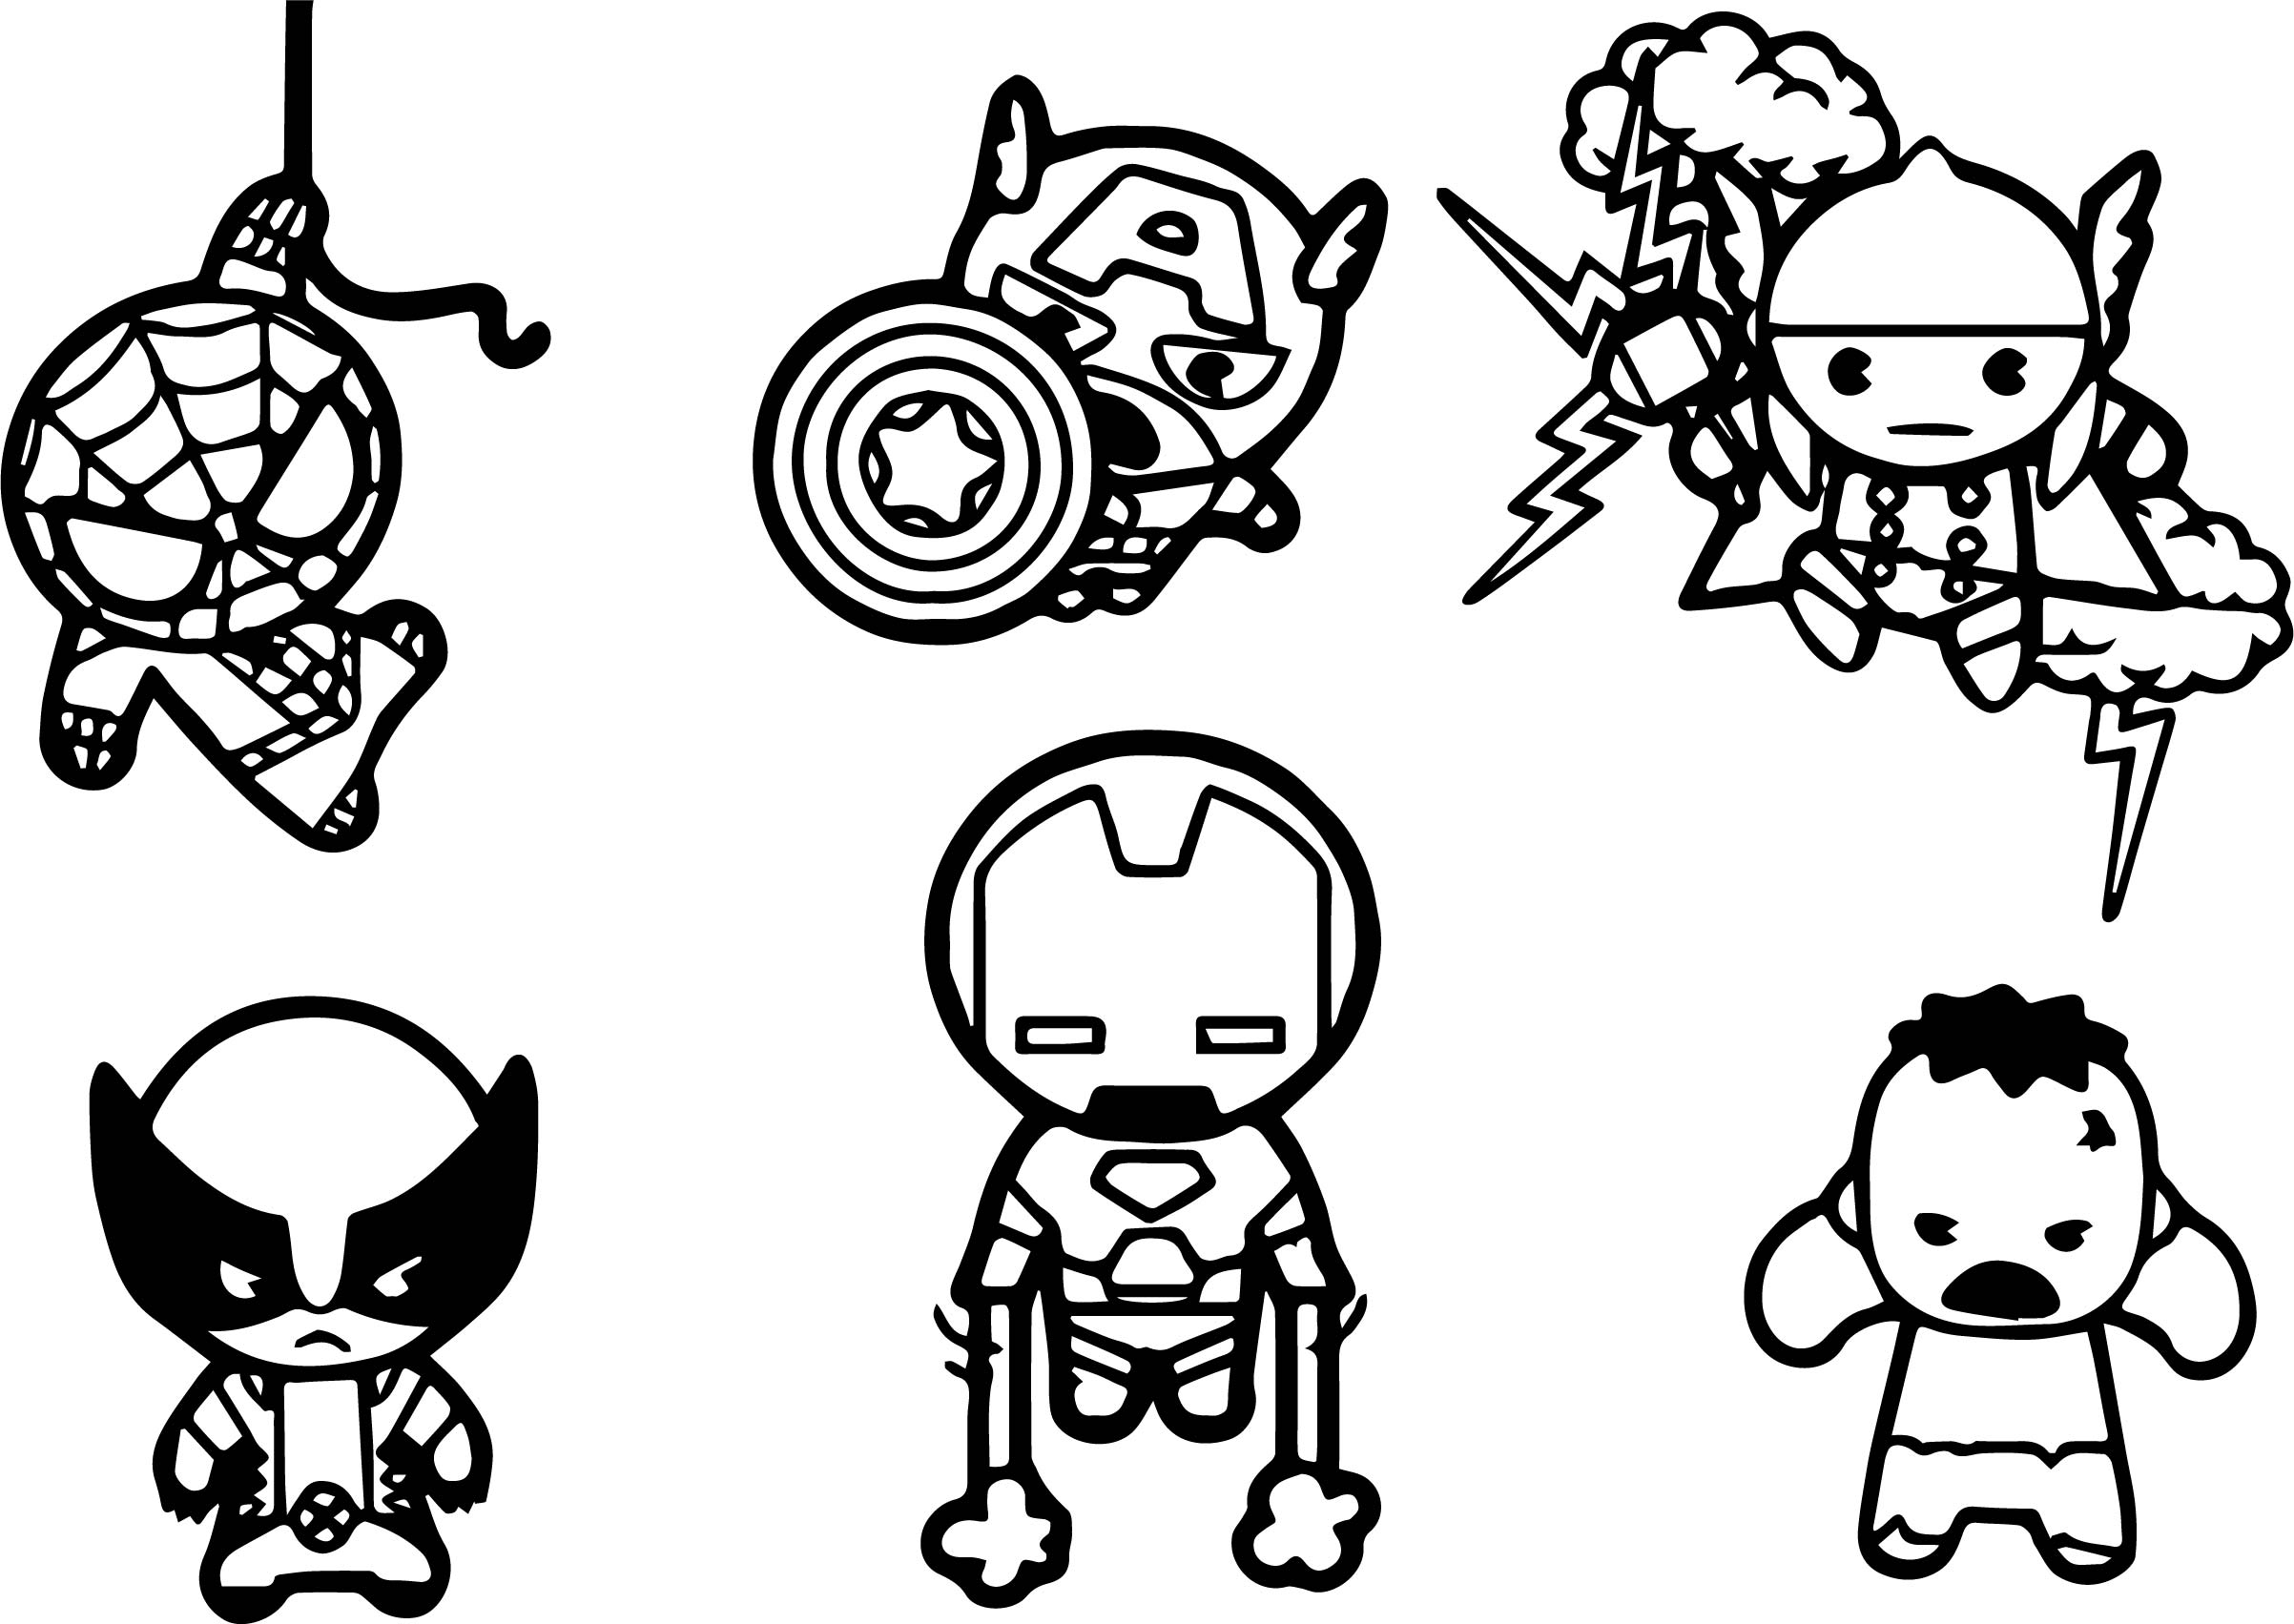 cute avengers coloring pages new avengers chibi coloring pages coloring pages cute coloring pages avengers